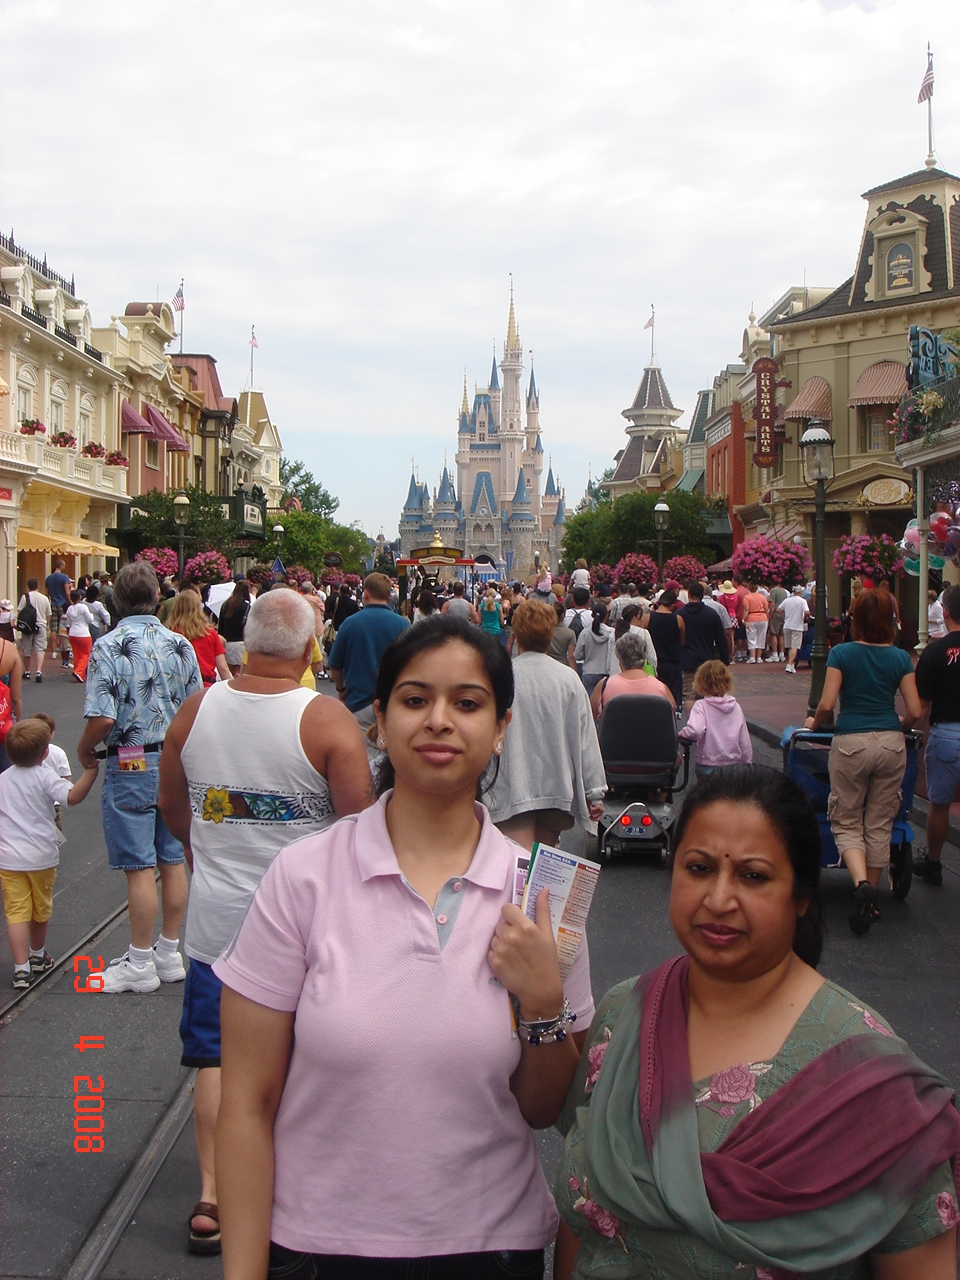 Main Street in Magic Kingdom in Orlando